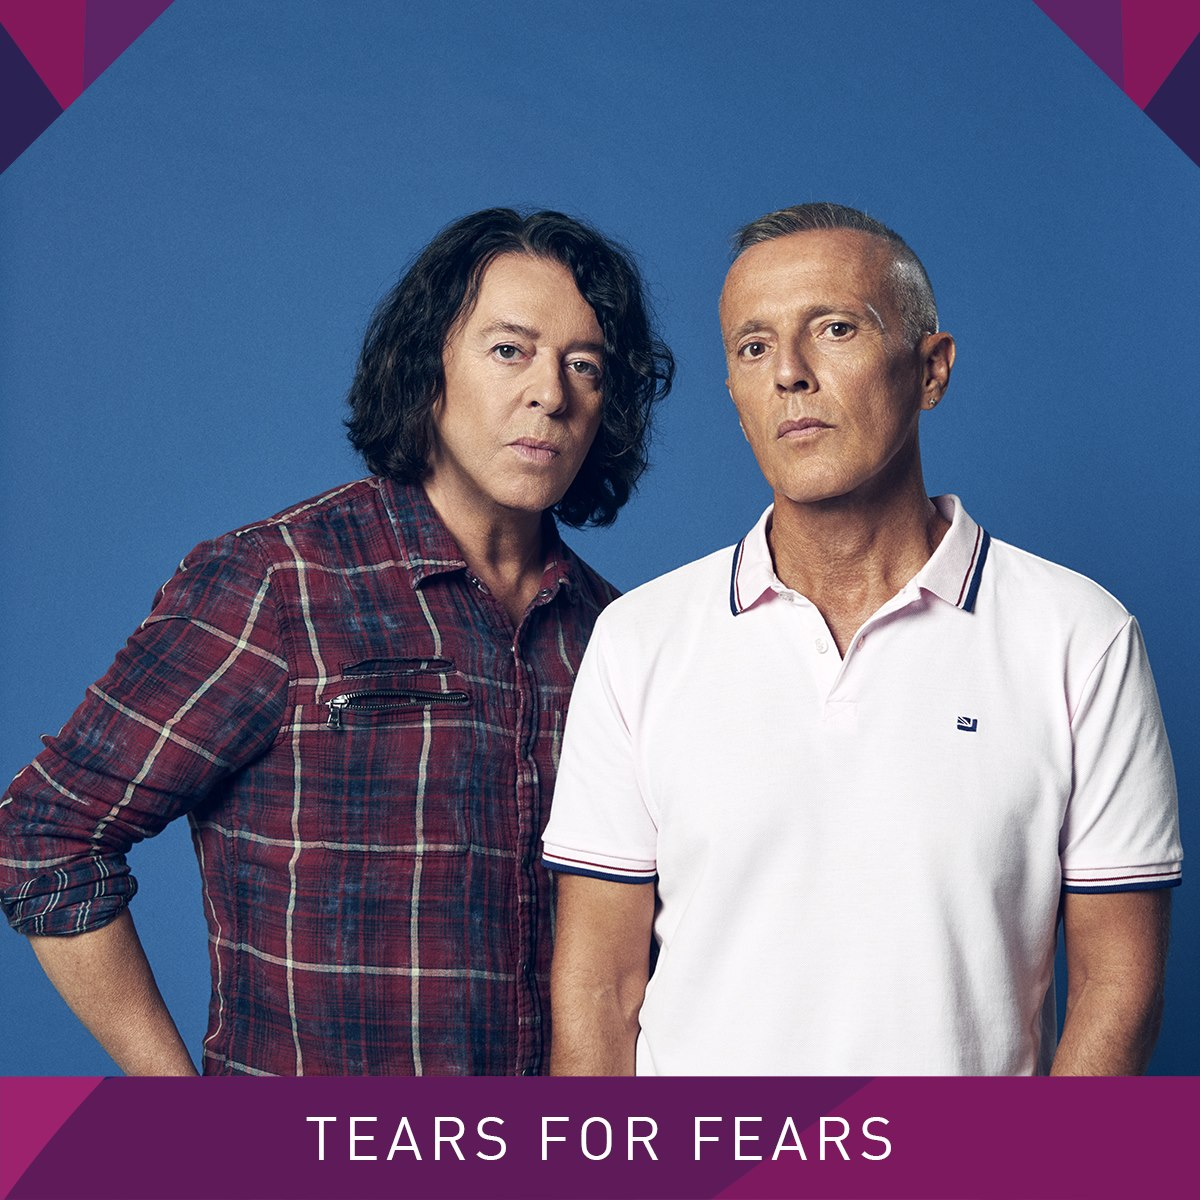 English pop-rock band Tears for Fears will be performing for the first time at H...